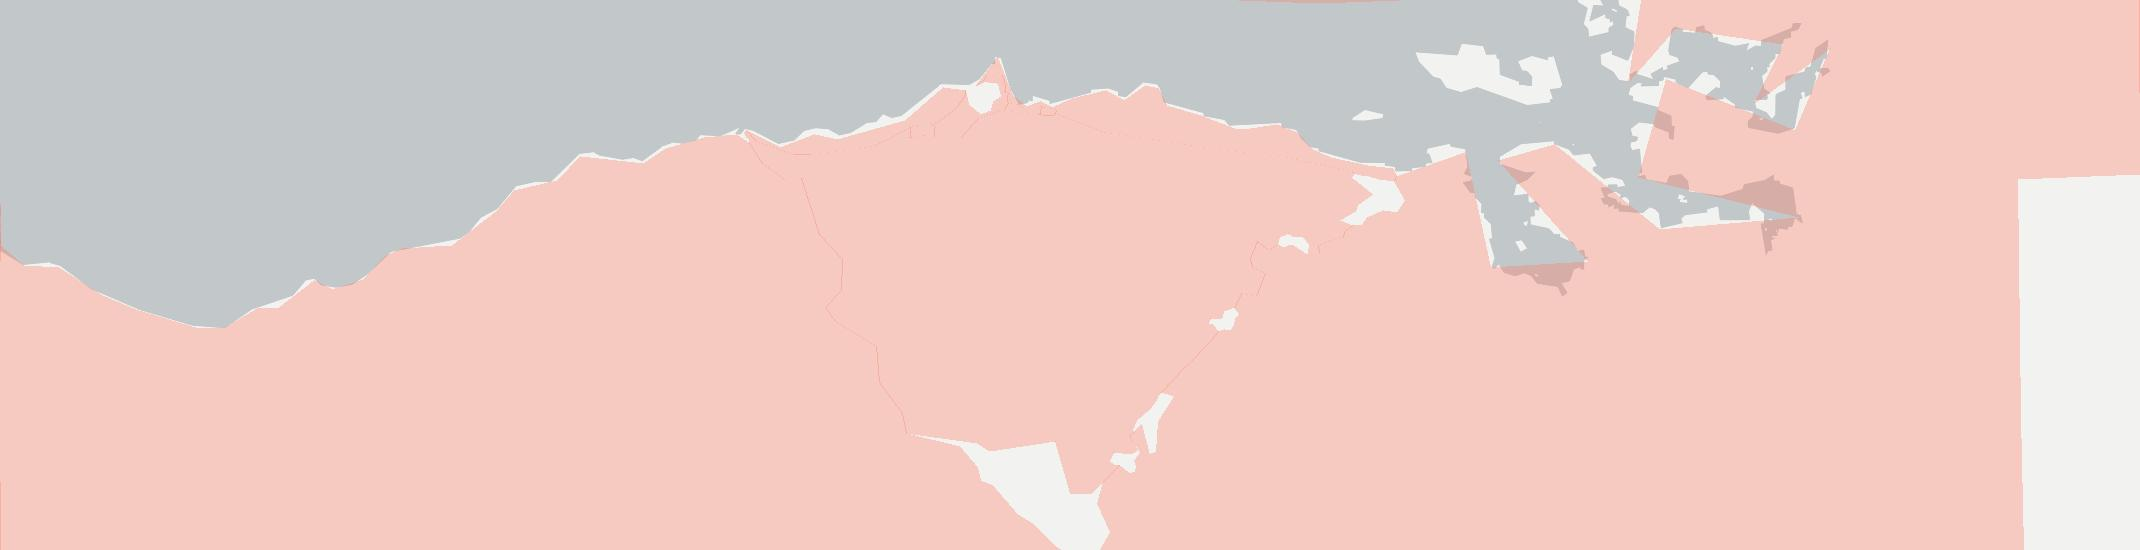 Kokhanok Internet Competition Map. Click for interactive map.